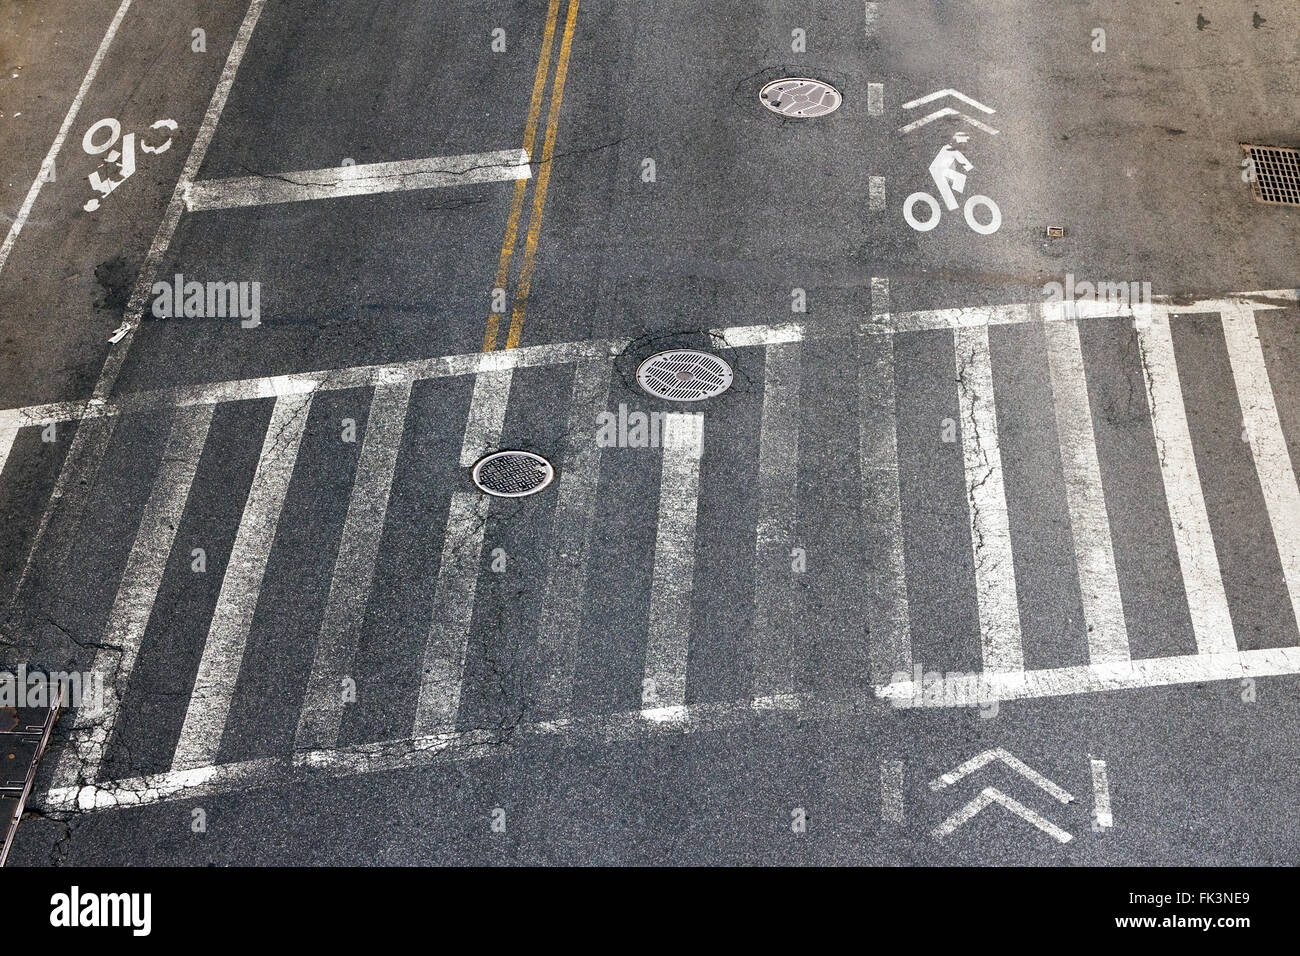 City street crosswalk and bike lanes in New York City - Stock Image